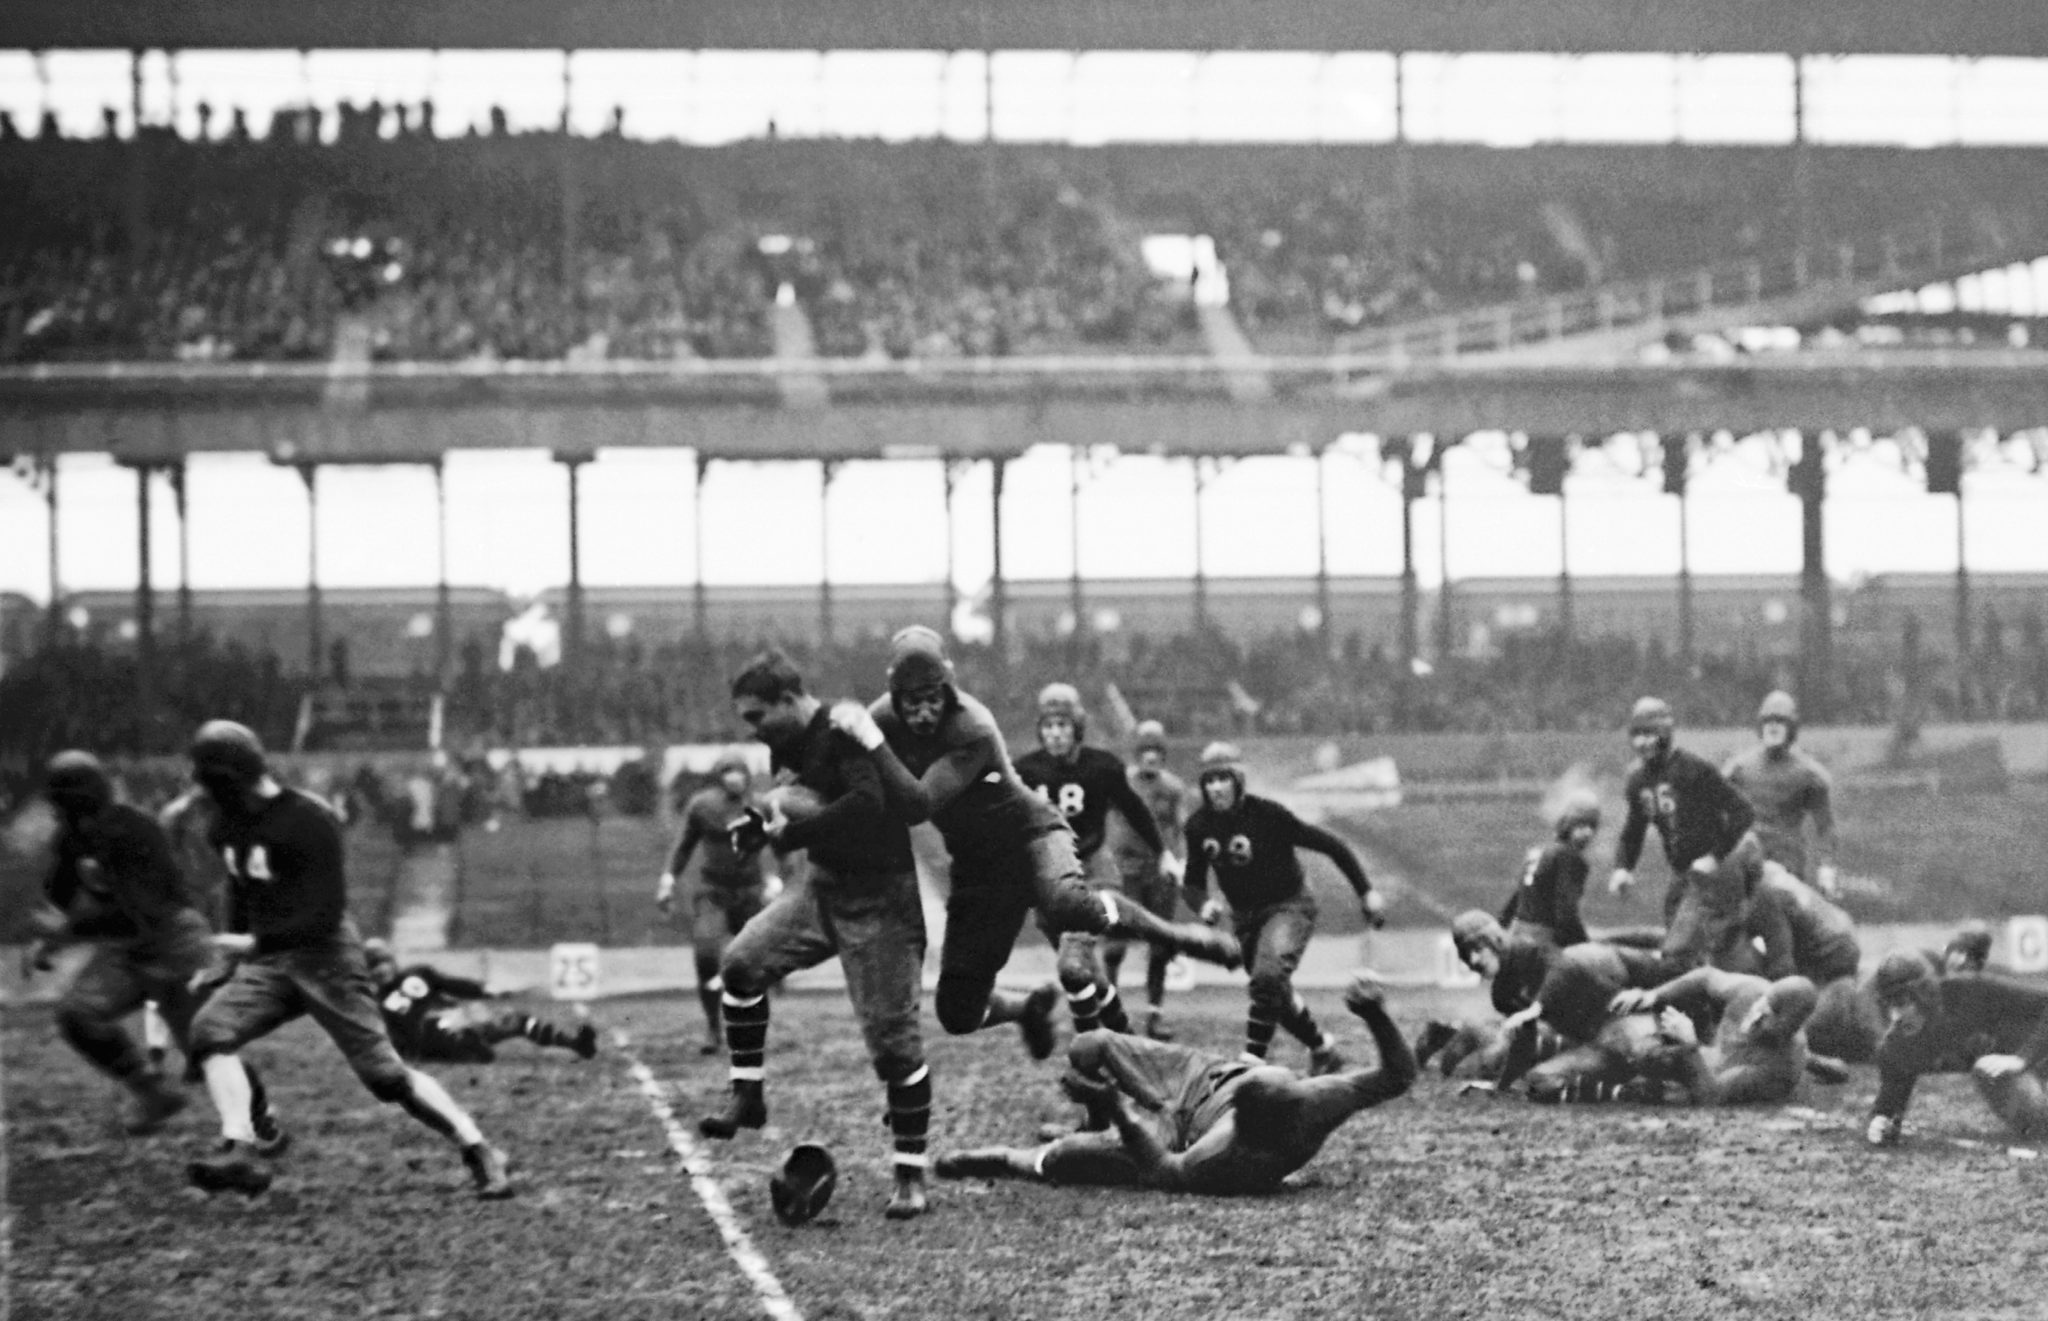 Nfl S First Decade Was The 1920s When Teams Came And Went